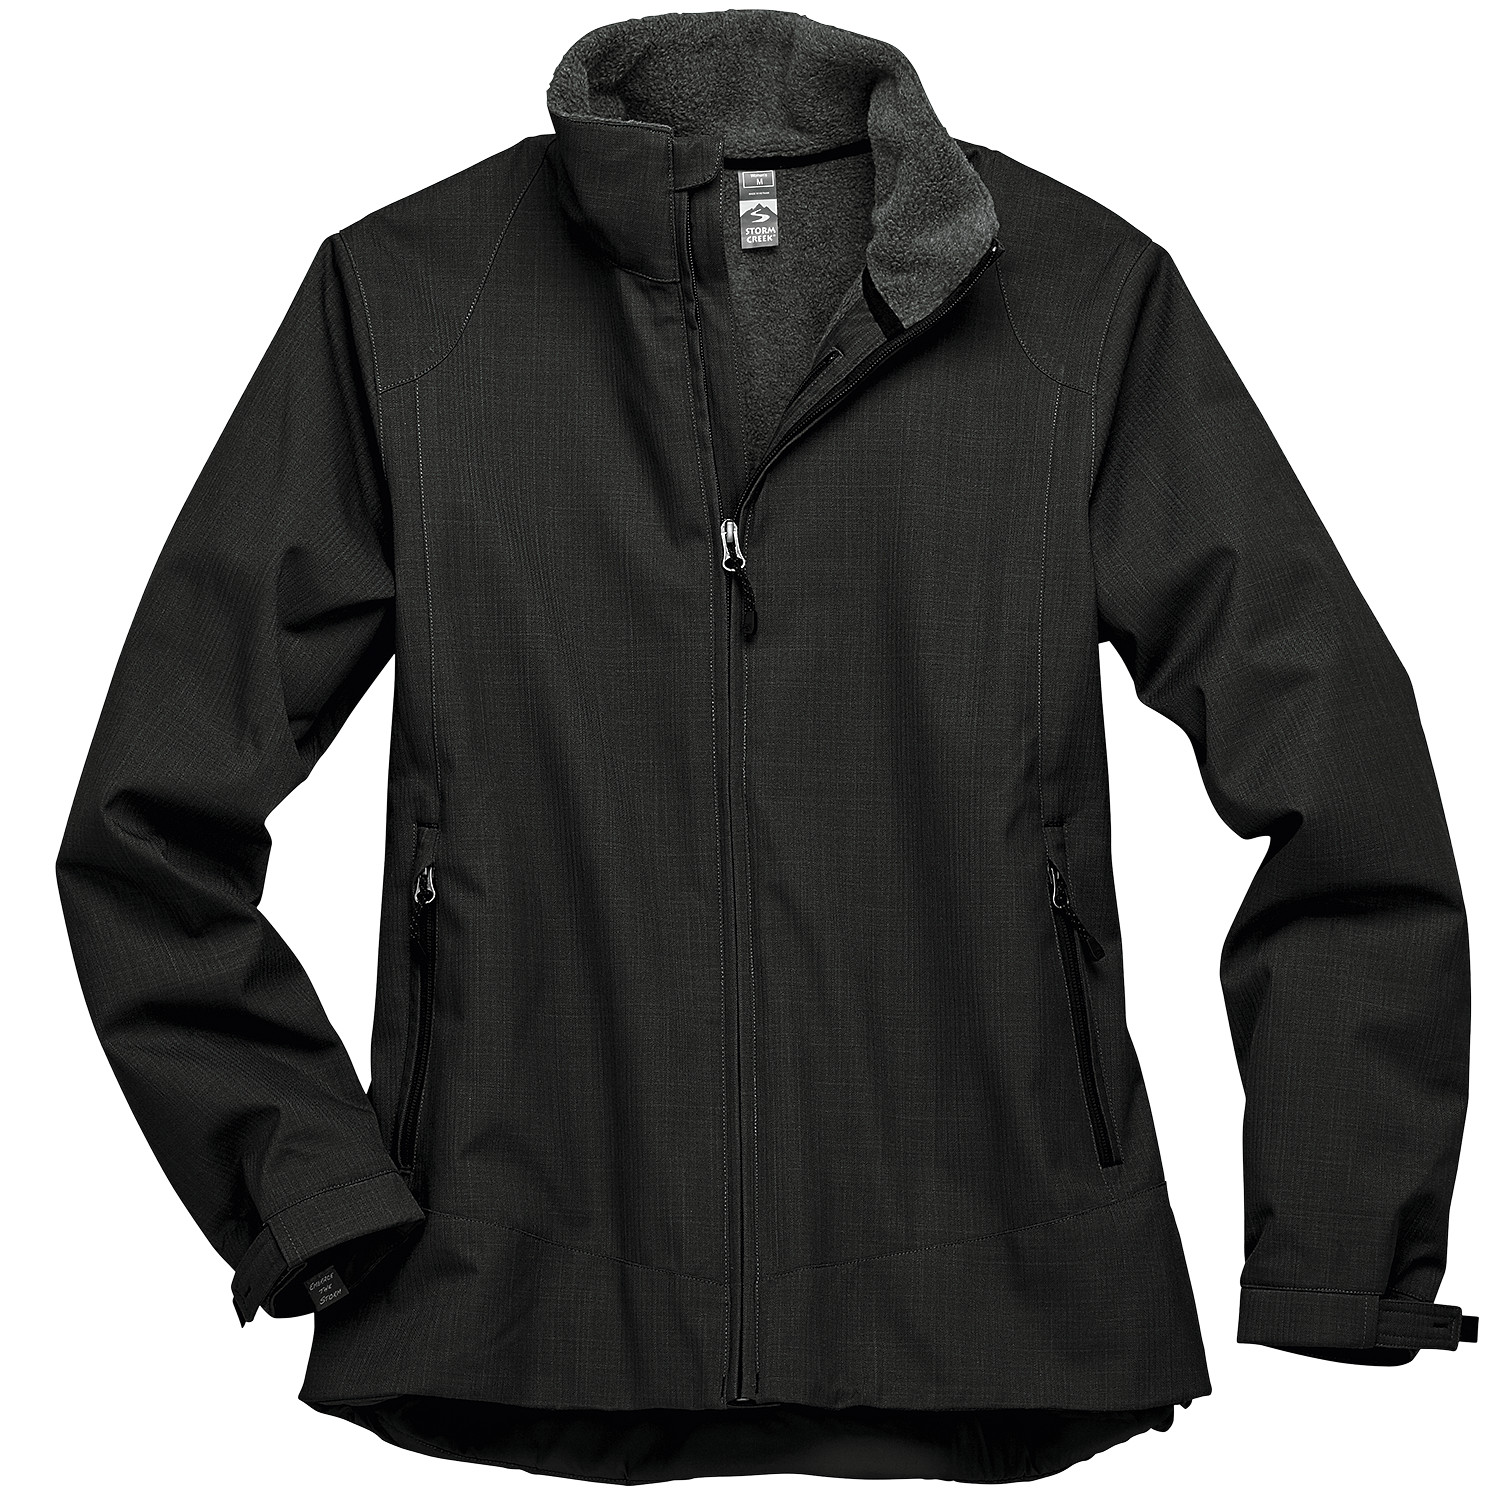 Storm Creek S6315 - Women's 'Lindsey' Elite Fleece-Lined ...